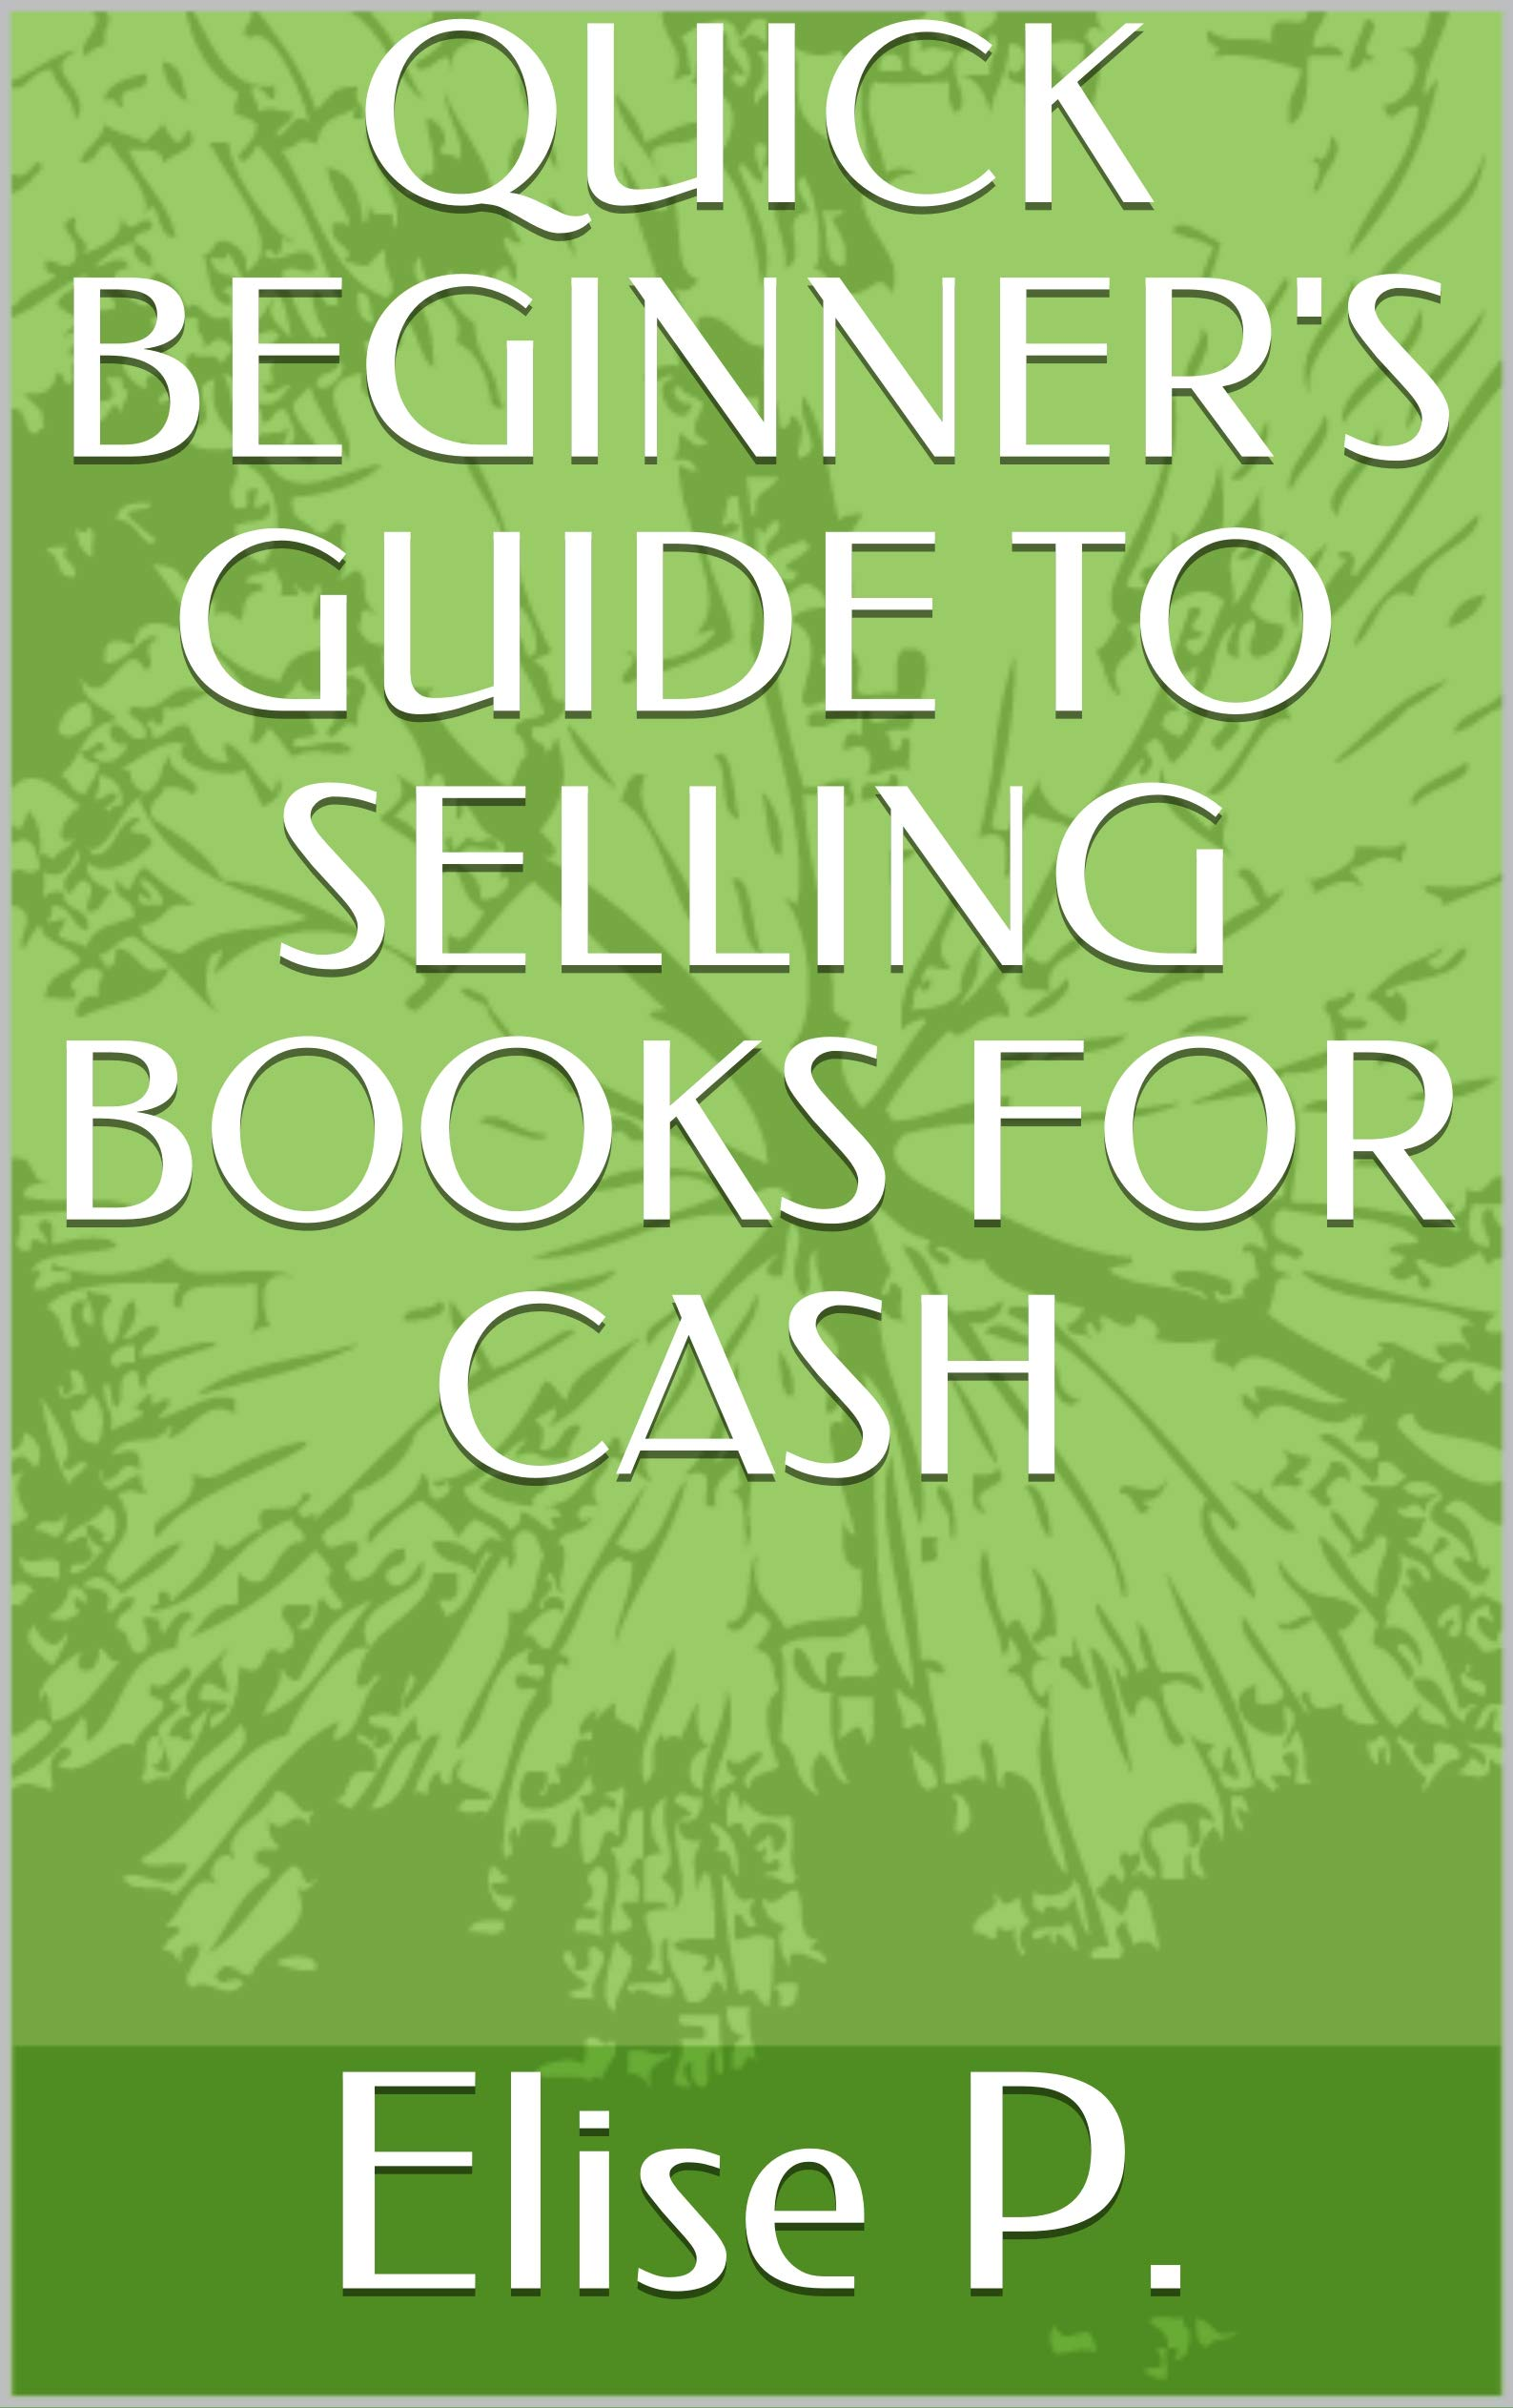 QUICK BEGINNER'S GUIDE TO SELLING BOOKS FOR CASH